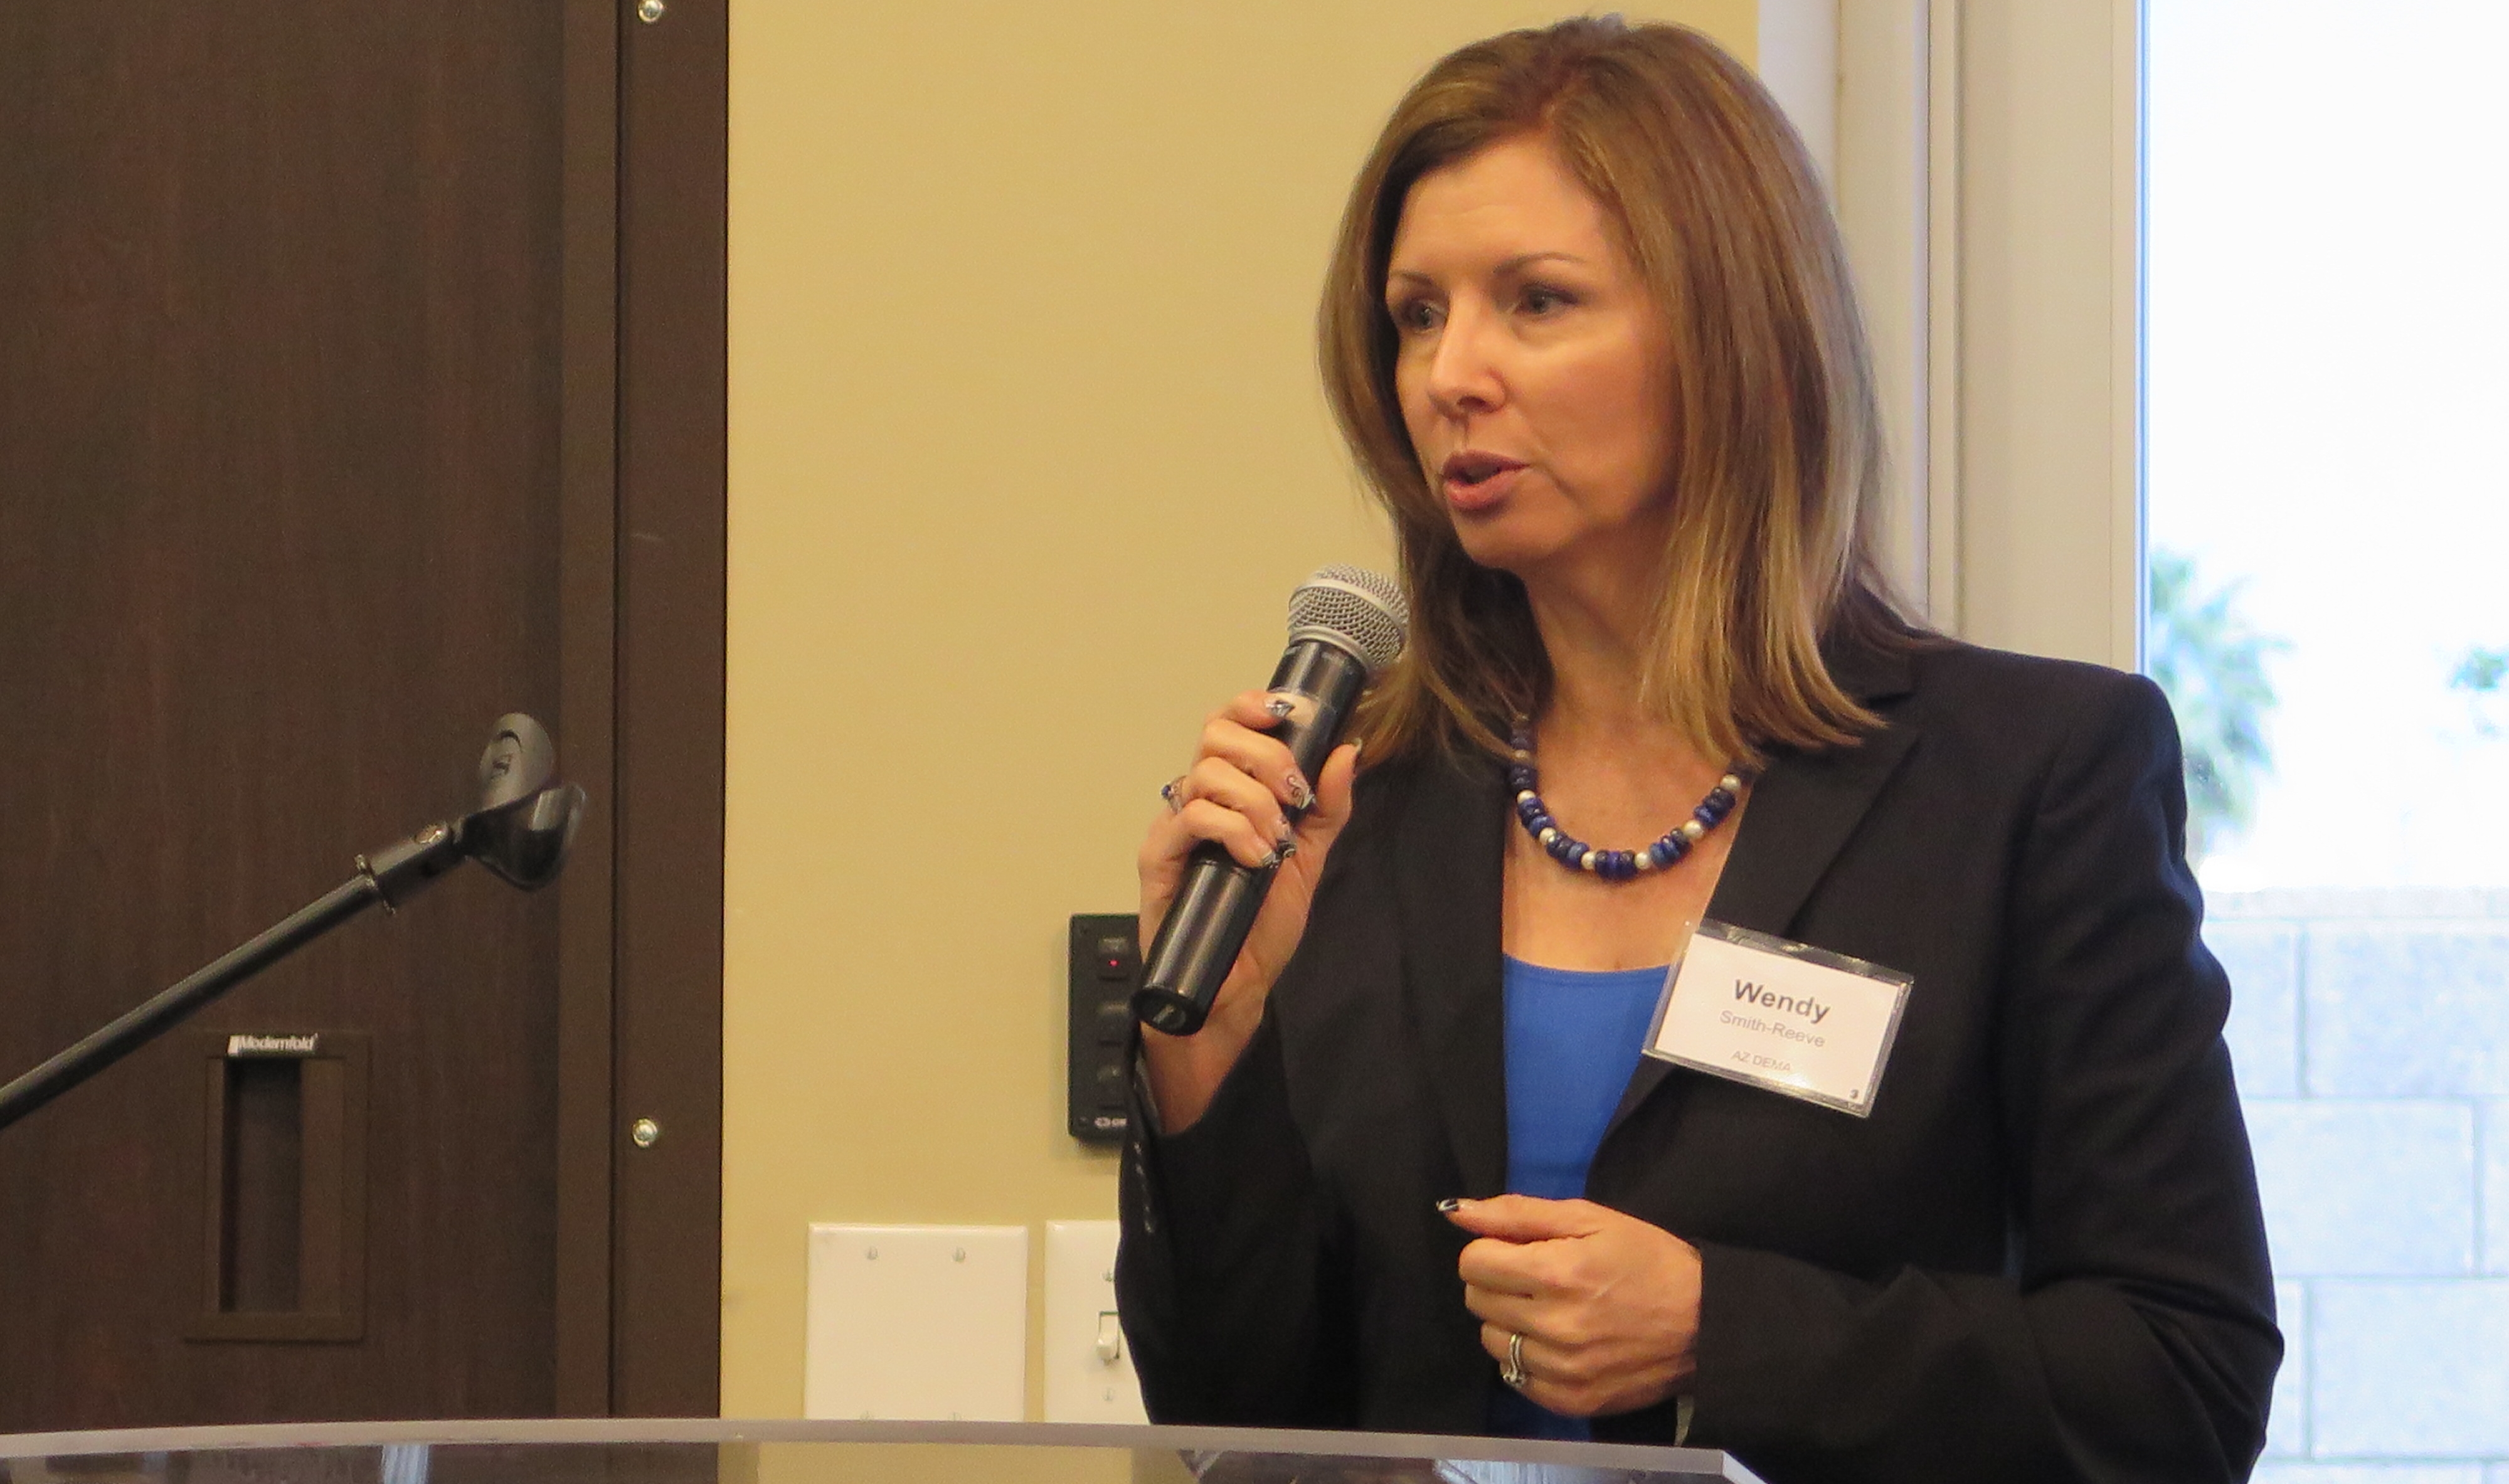 DEMA Director Wendy Smith-Reeve speaks at Statewide Whole Community Summit